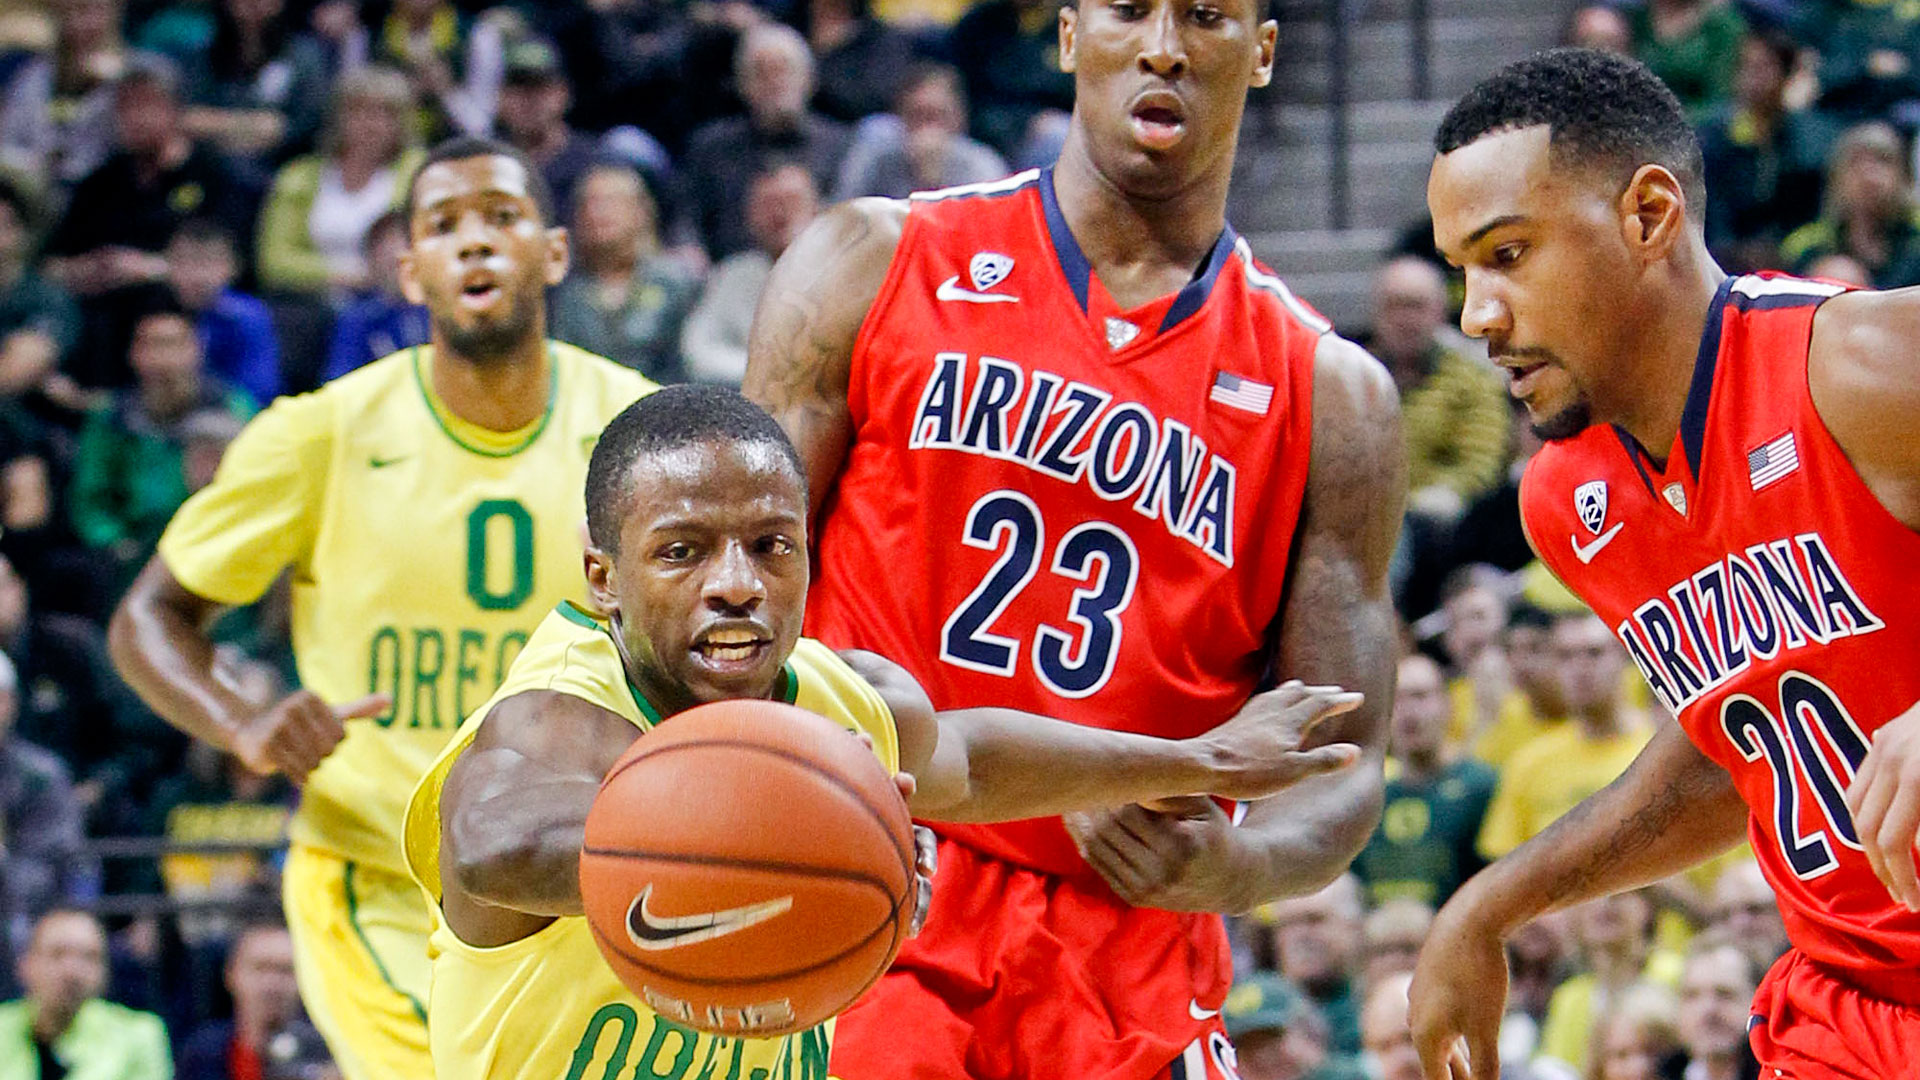 Oregon Johnathan Loyd-030814-AP-FTR.jpg